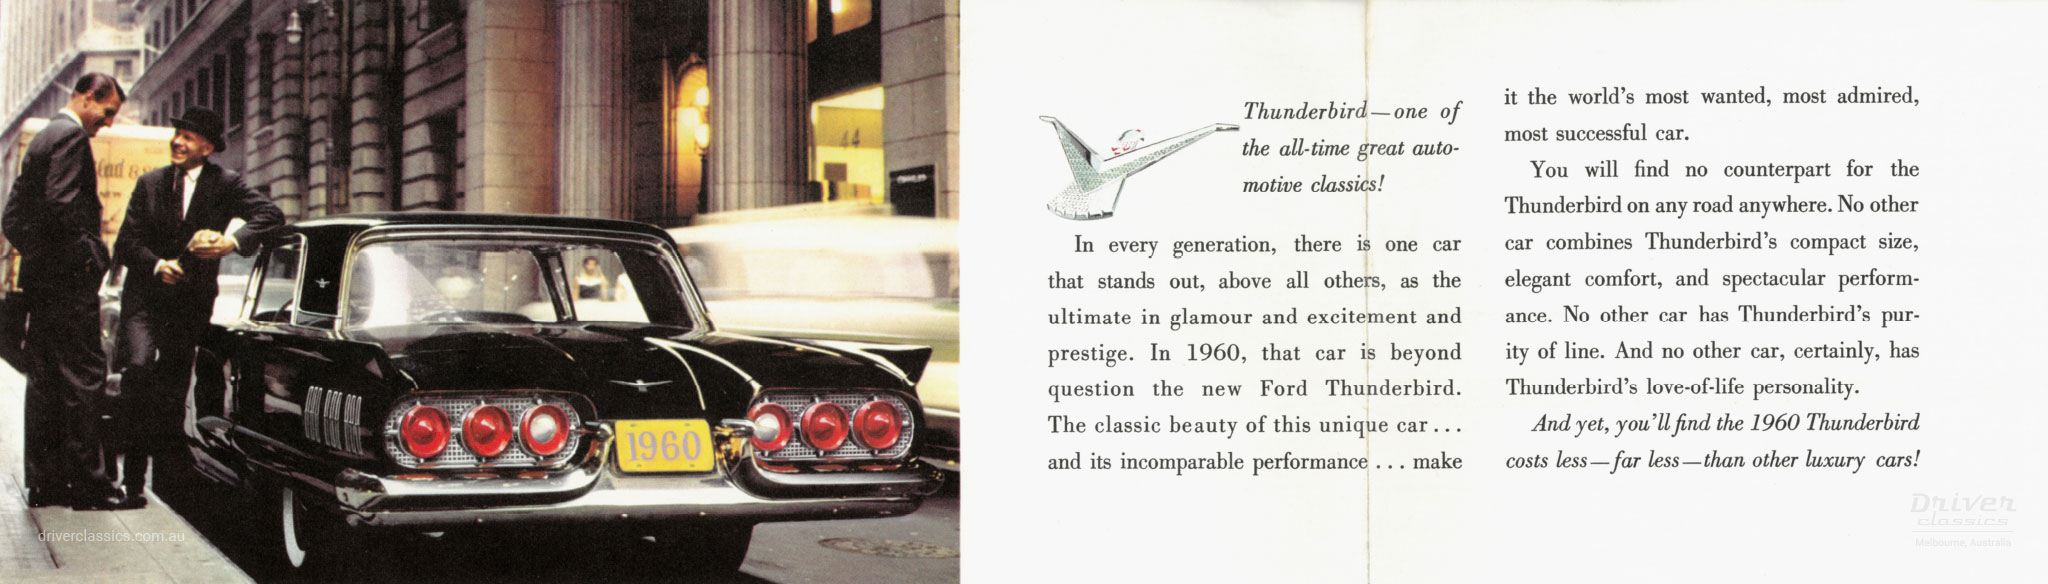 Page from of 1960 Ford Thunderbird brochure